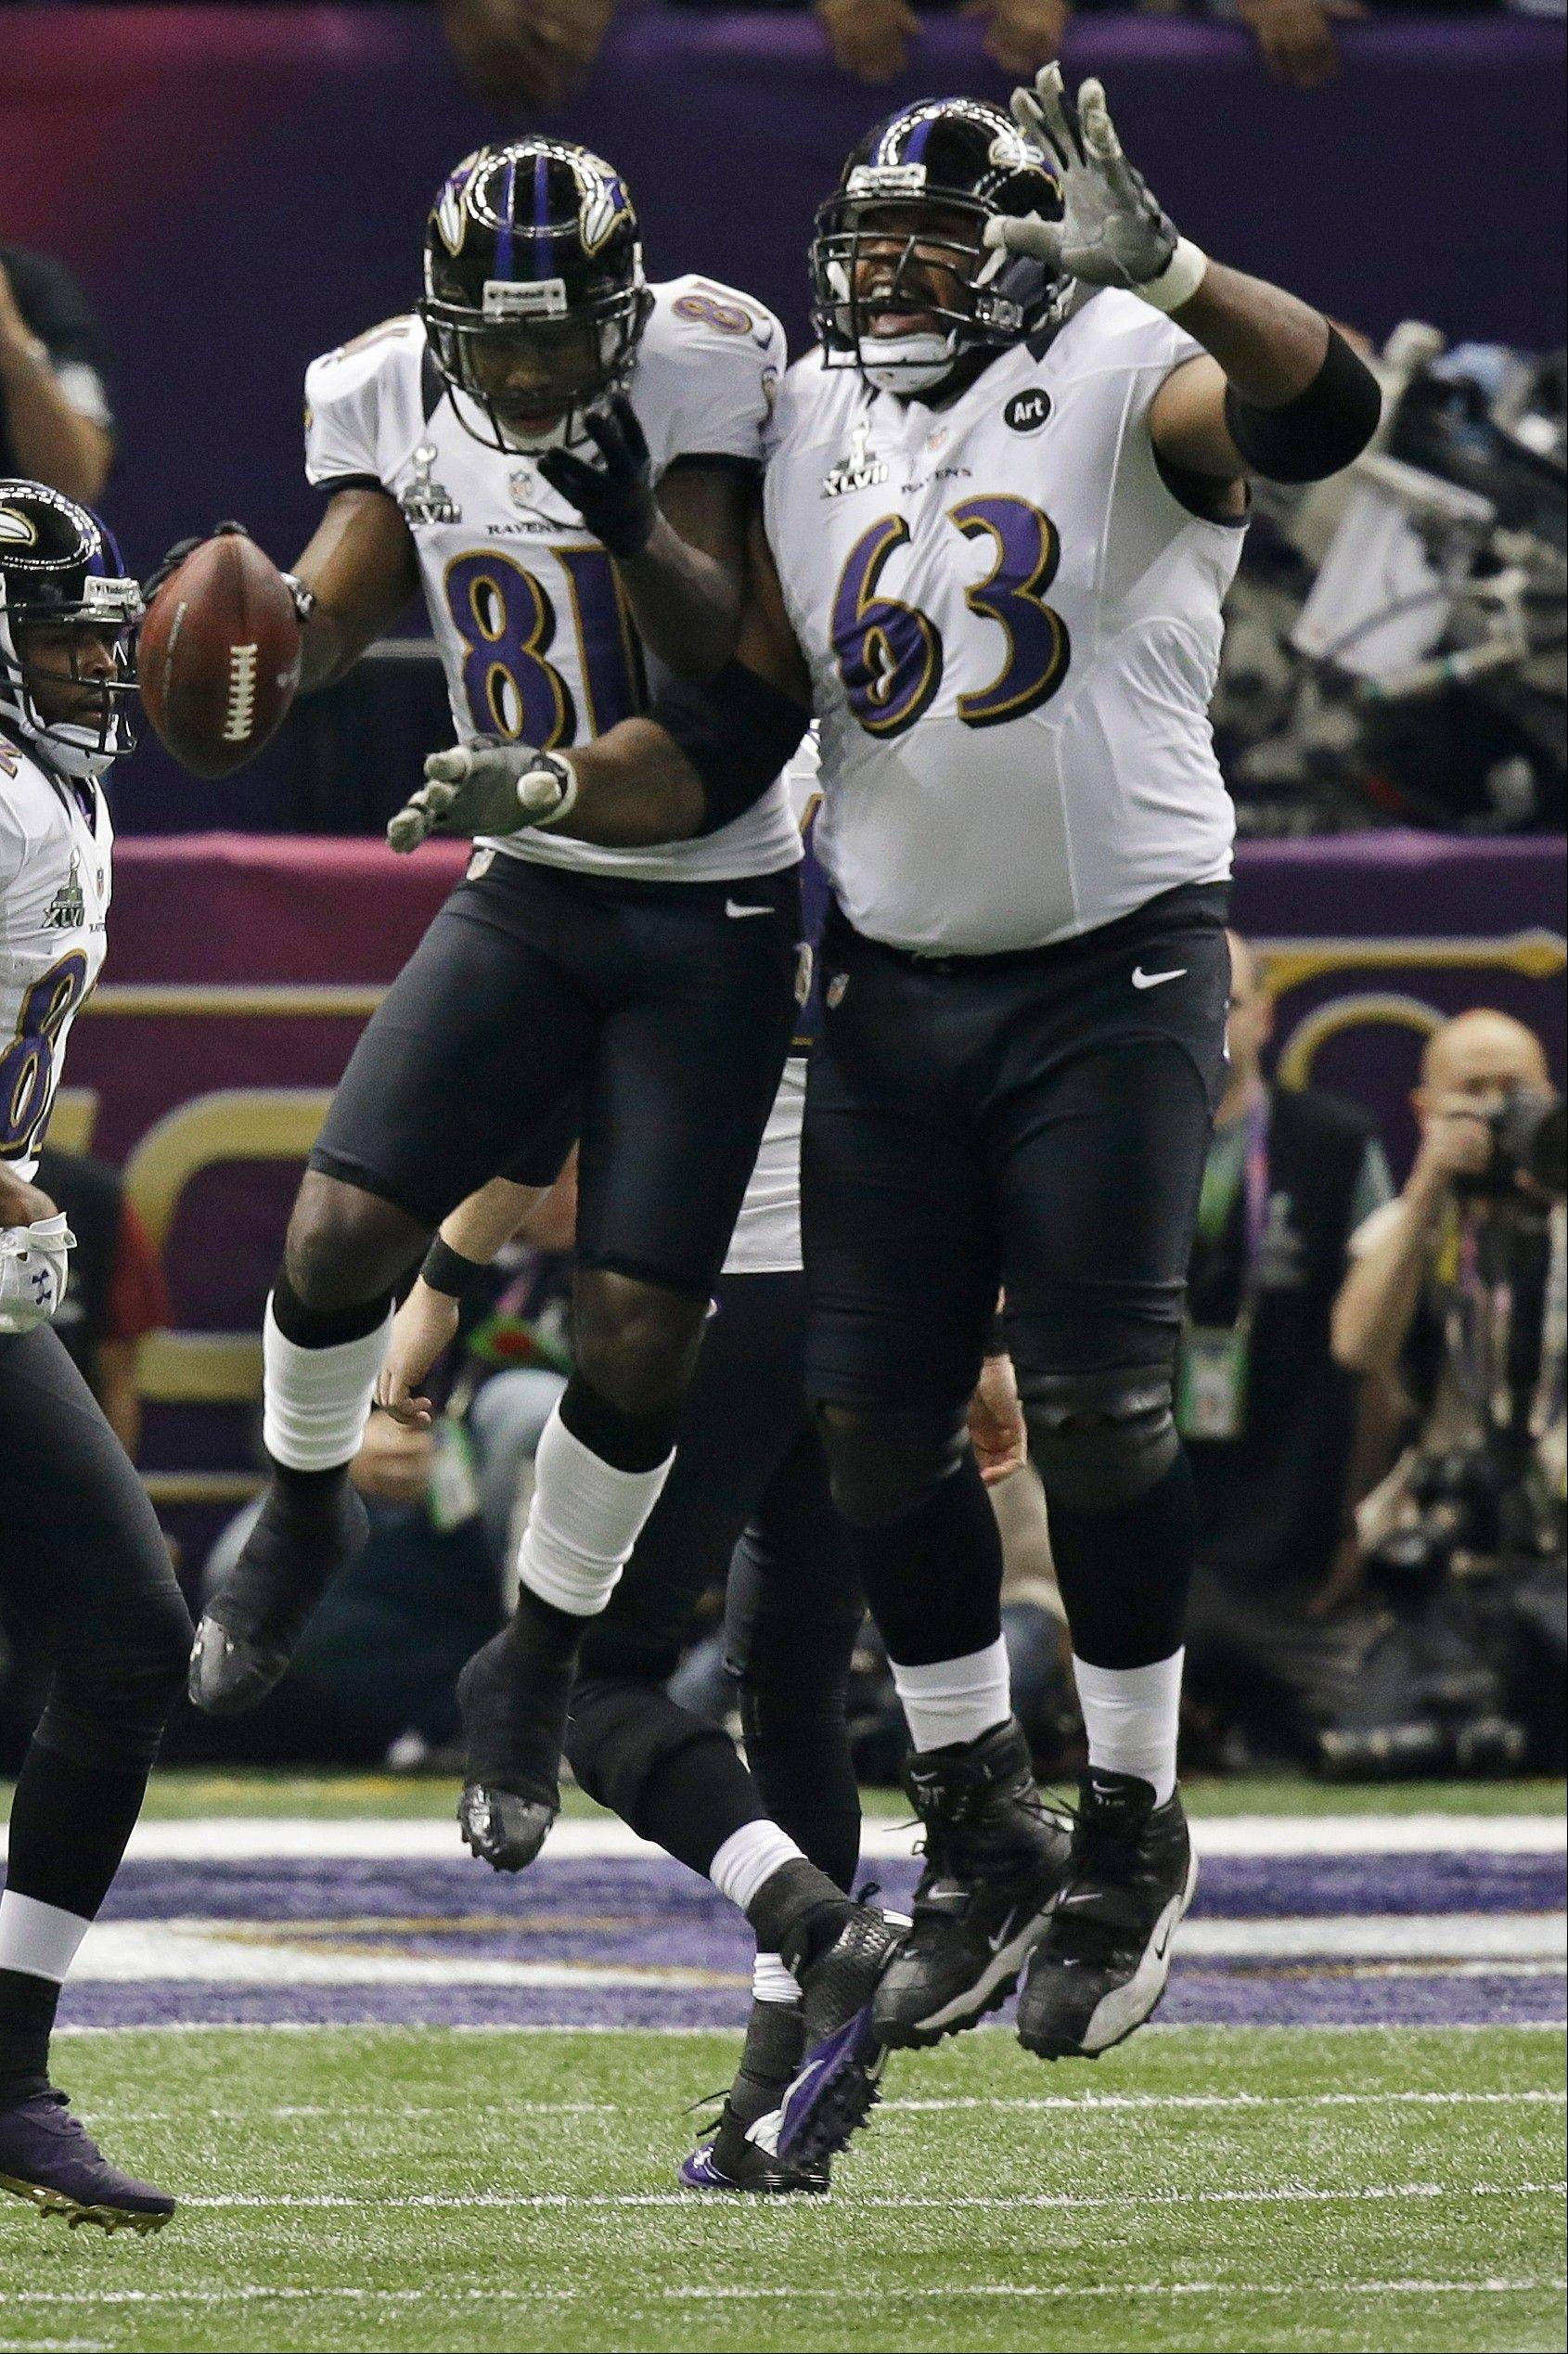 Baltimore Ravens wide receiver Anquan Boldin (81) celebrate his touchdown reception with offensive lineman Bobbie Williams (63) in the first half.